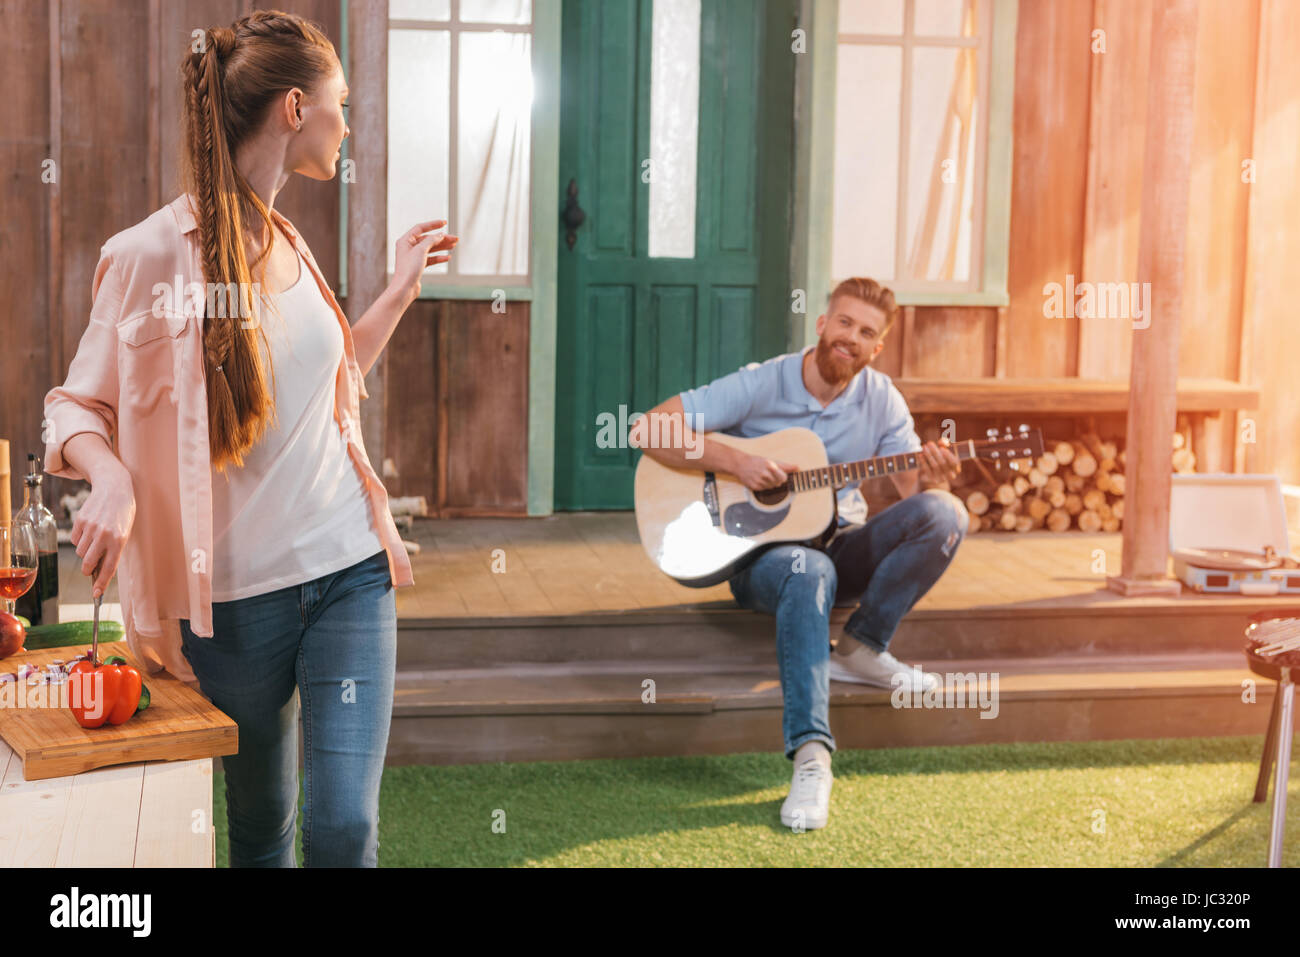 man and woman resting on porch, man playing on guitar - Stock Image